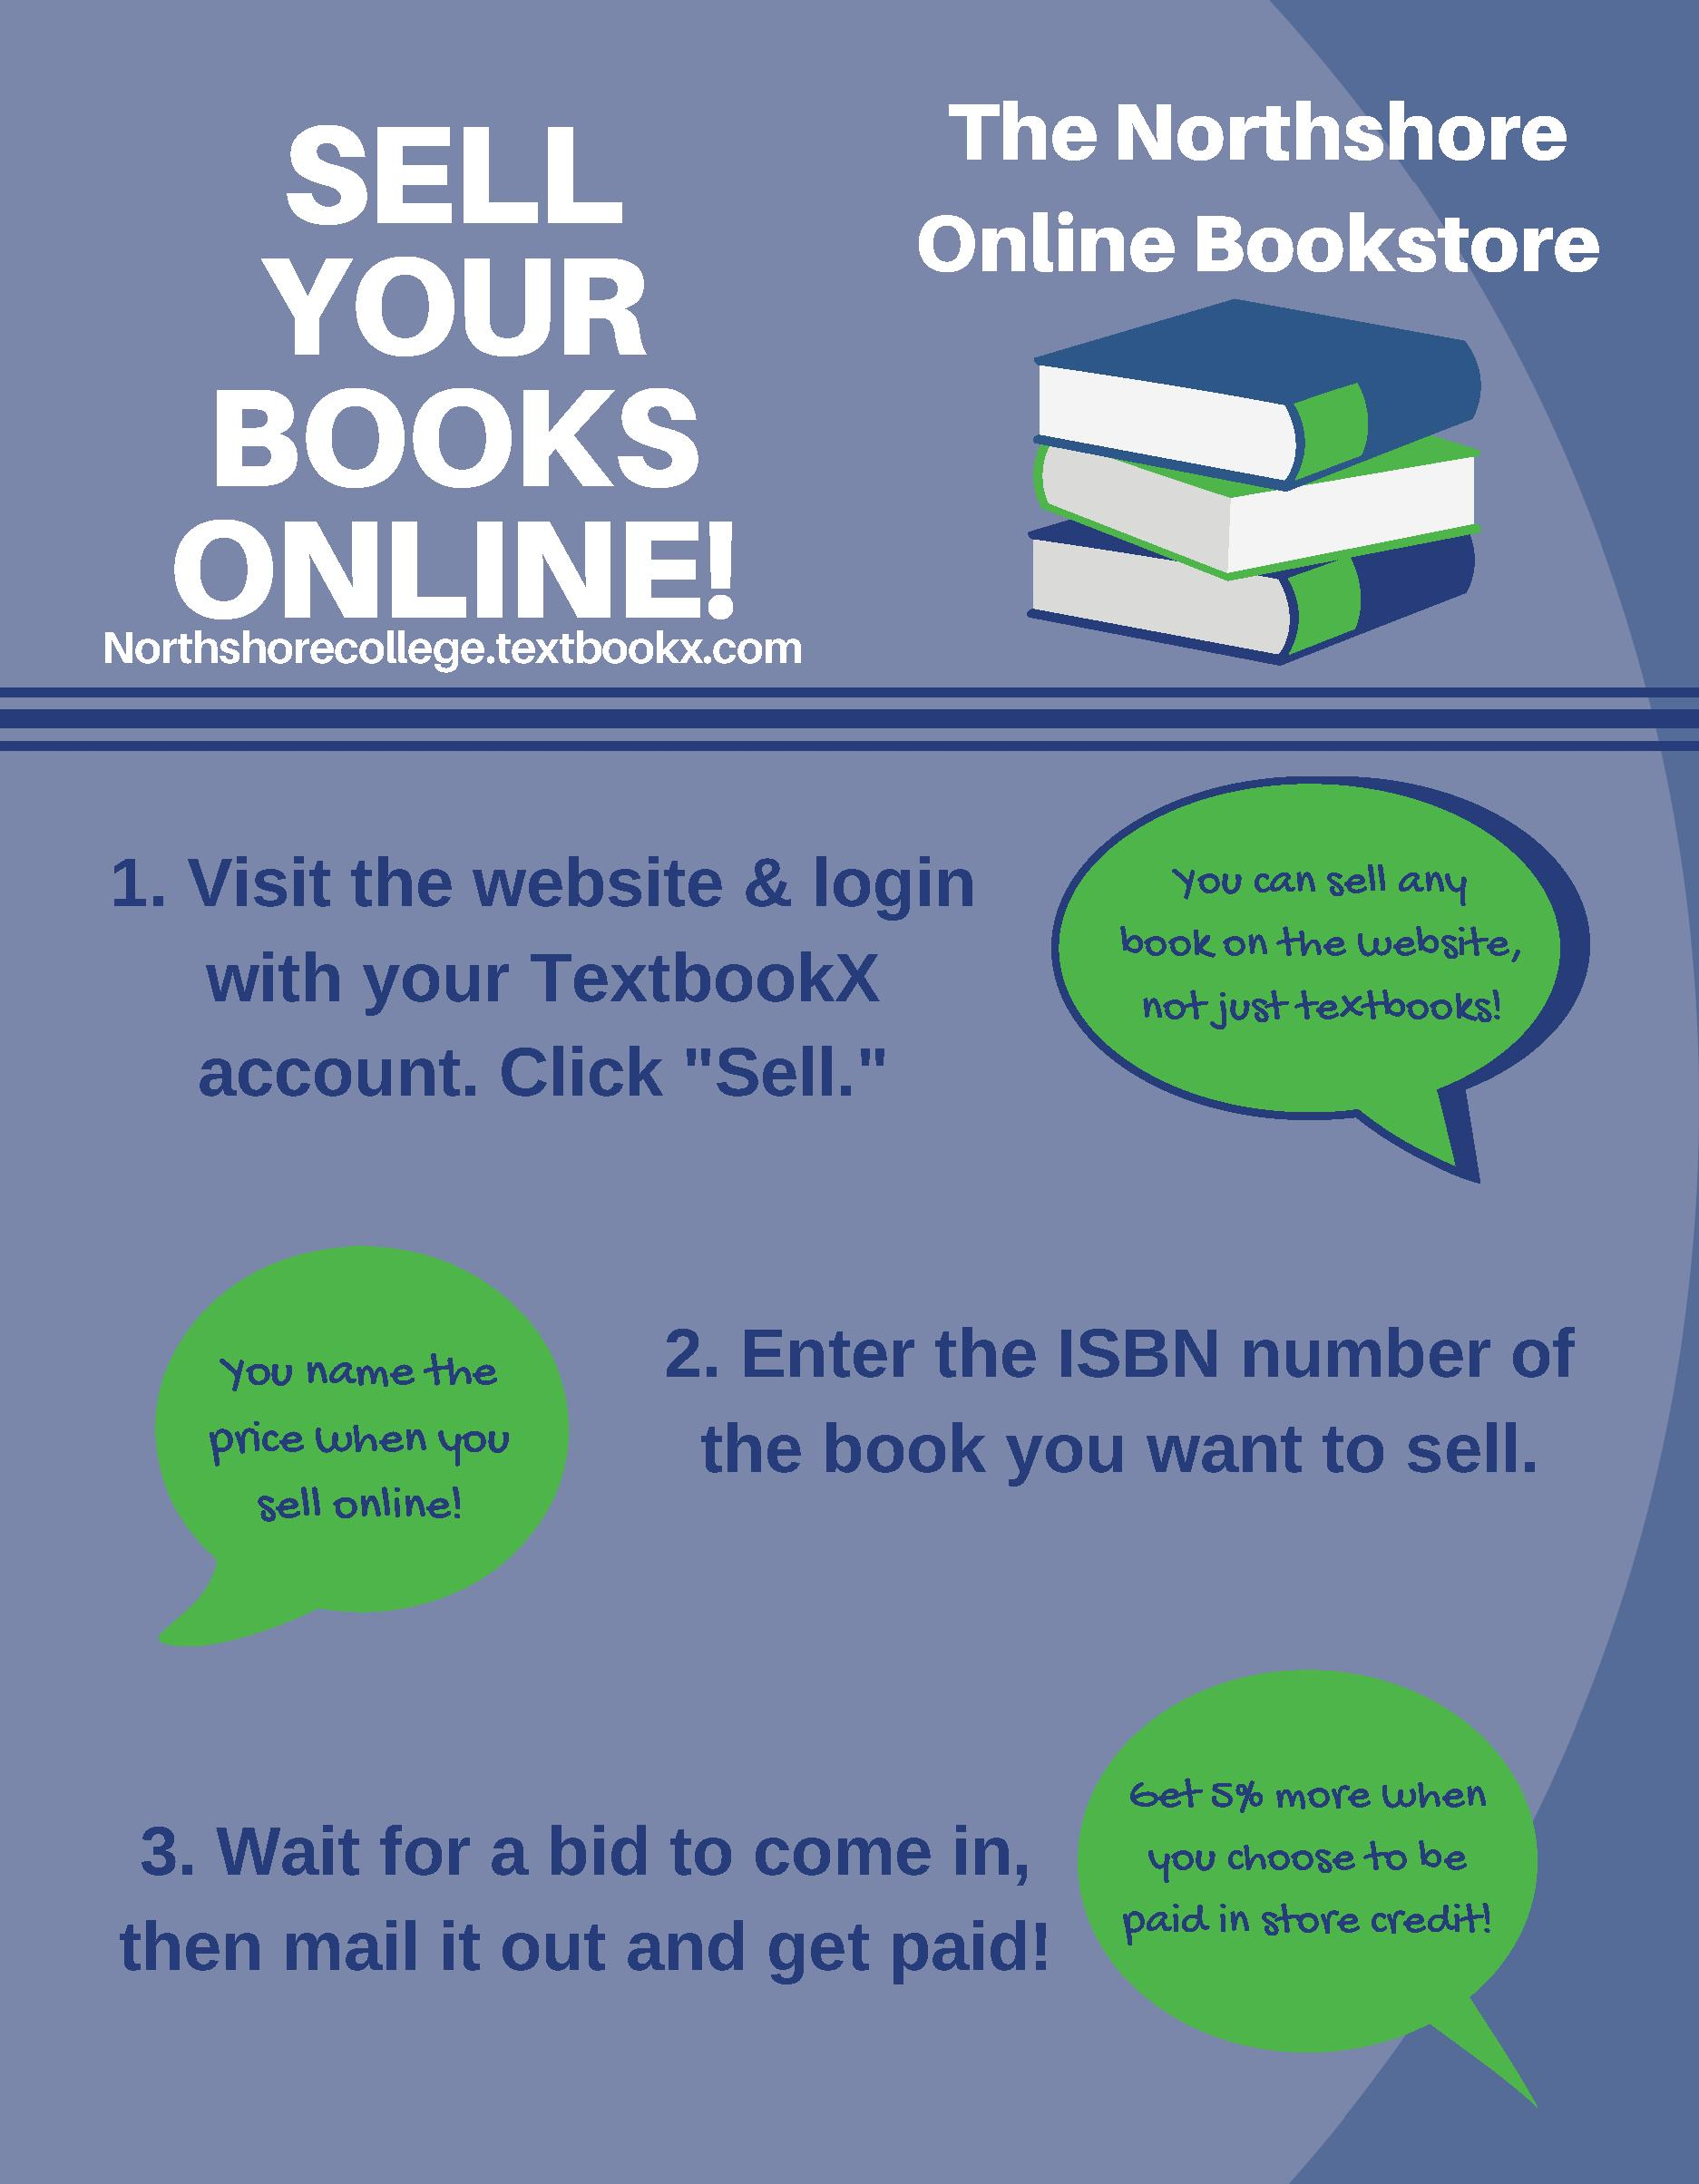 "Sell Your Books Online!  Northshorecollege.textbookx.com  The Northshore Online Bookstore.  1. Visit the website & login with your TextbookX account.  Click ""Sell.""  You can sell any book on the website, not just textbooks!  2. Enter the ISBN number of the book you want to sell.  You name the price when you sell online!  3. Wait for a bid to come in, then mail it out and get paid!  Get 5% more when you choose to be paid in store credit!"